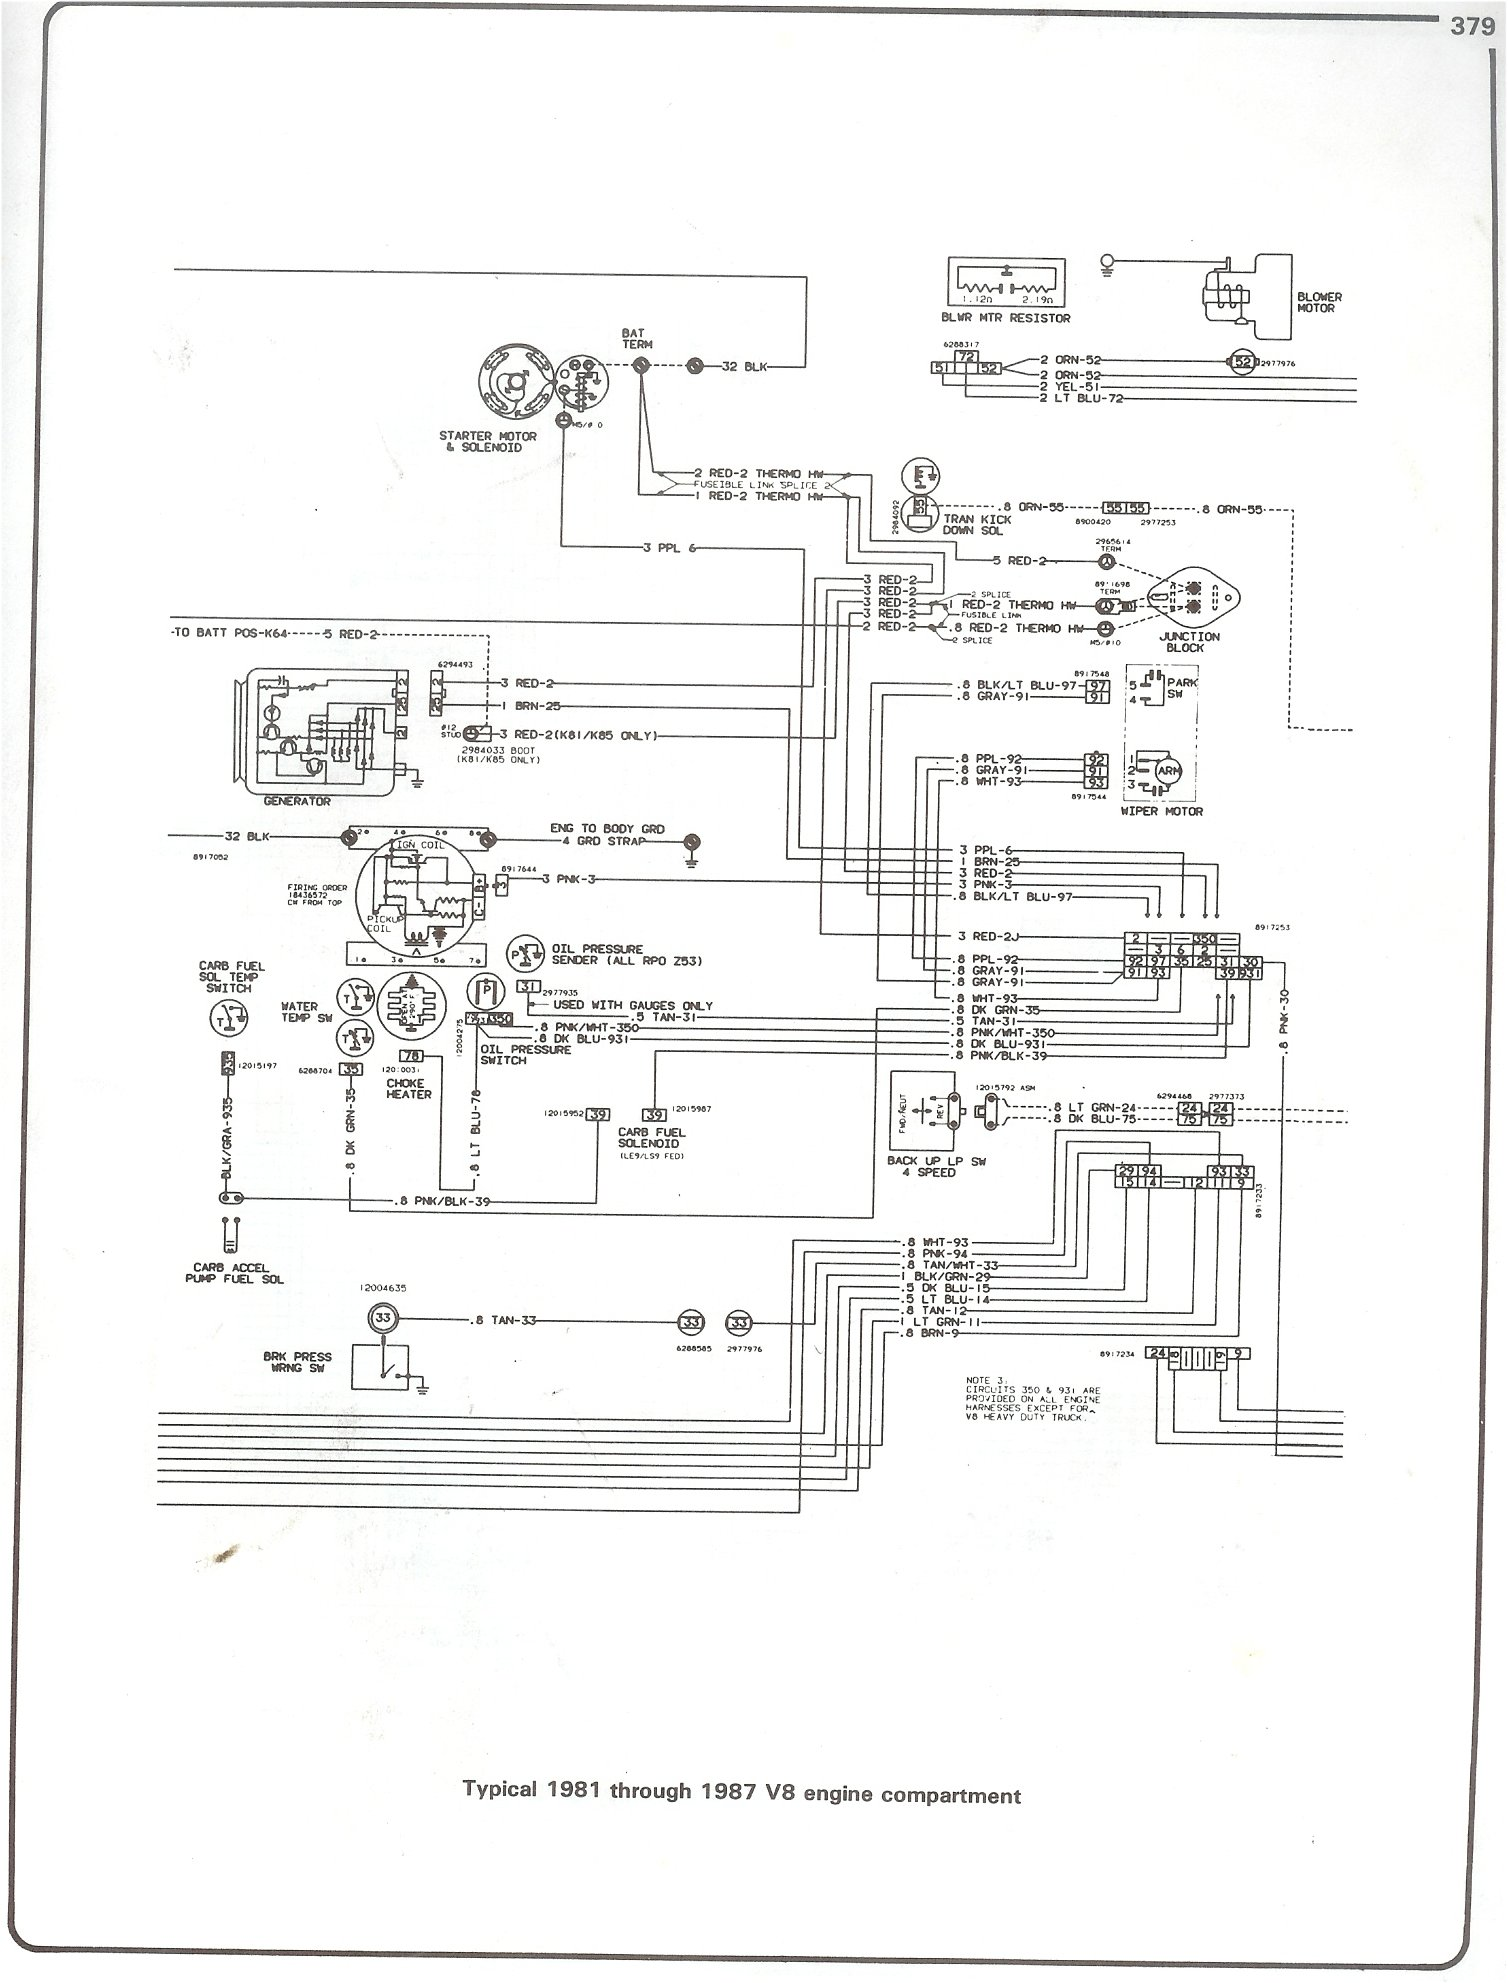 Complete 73 87 Wiring Diagrams Ac Codes 81 V8 Engine Compartment